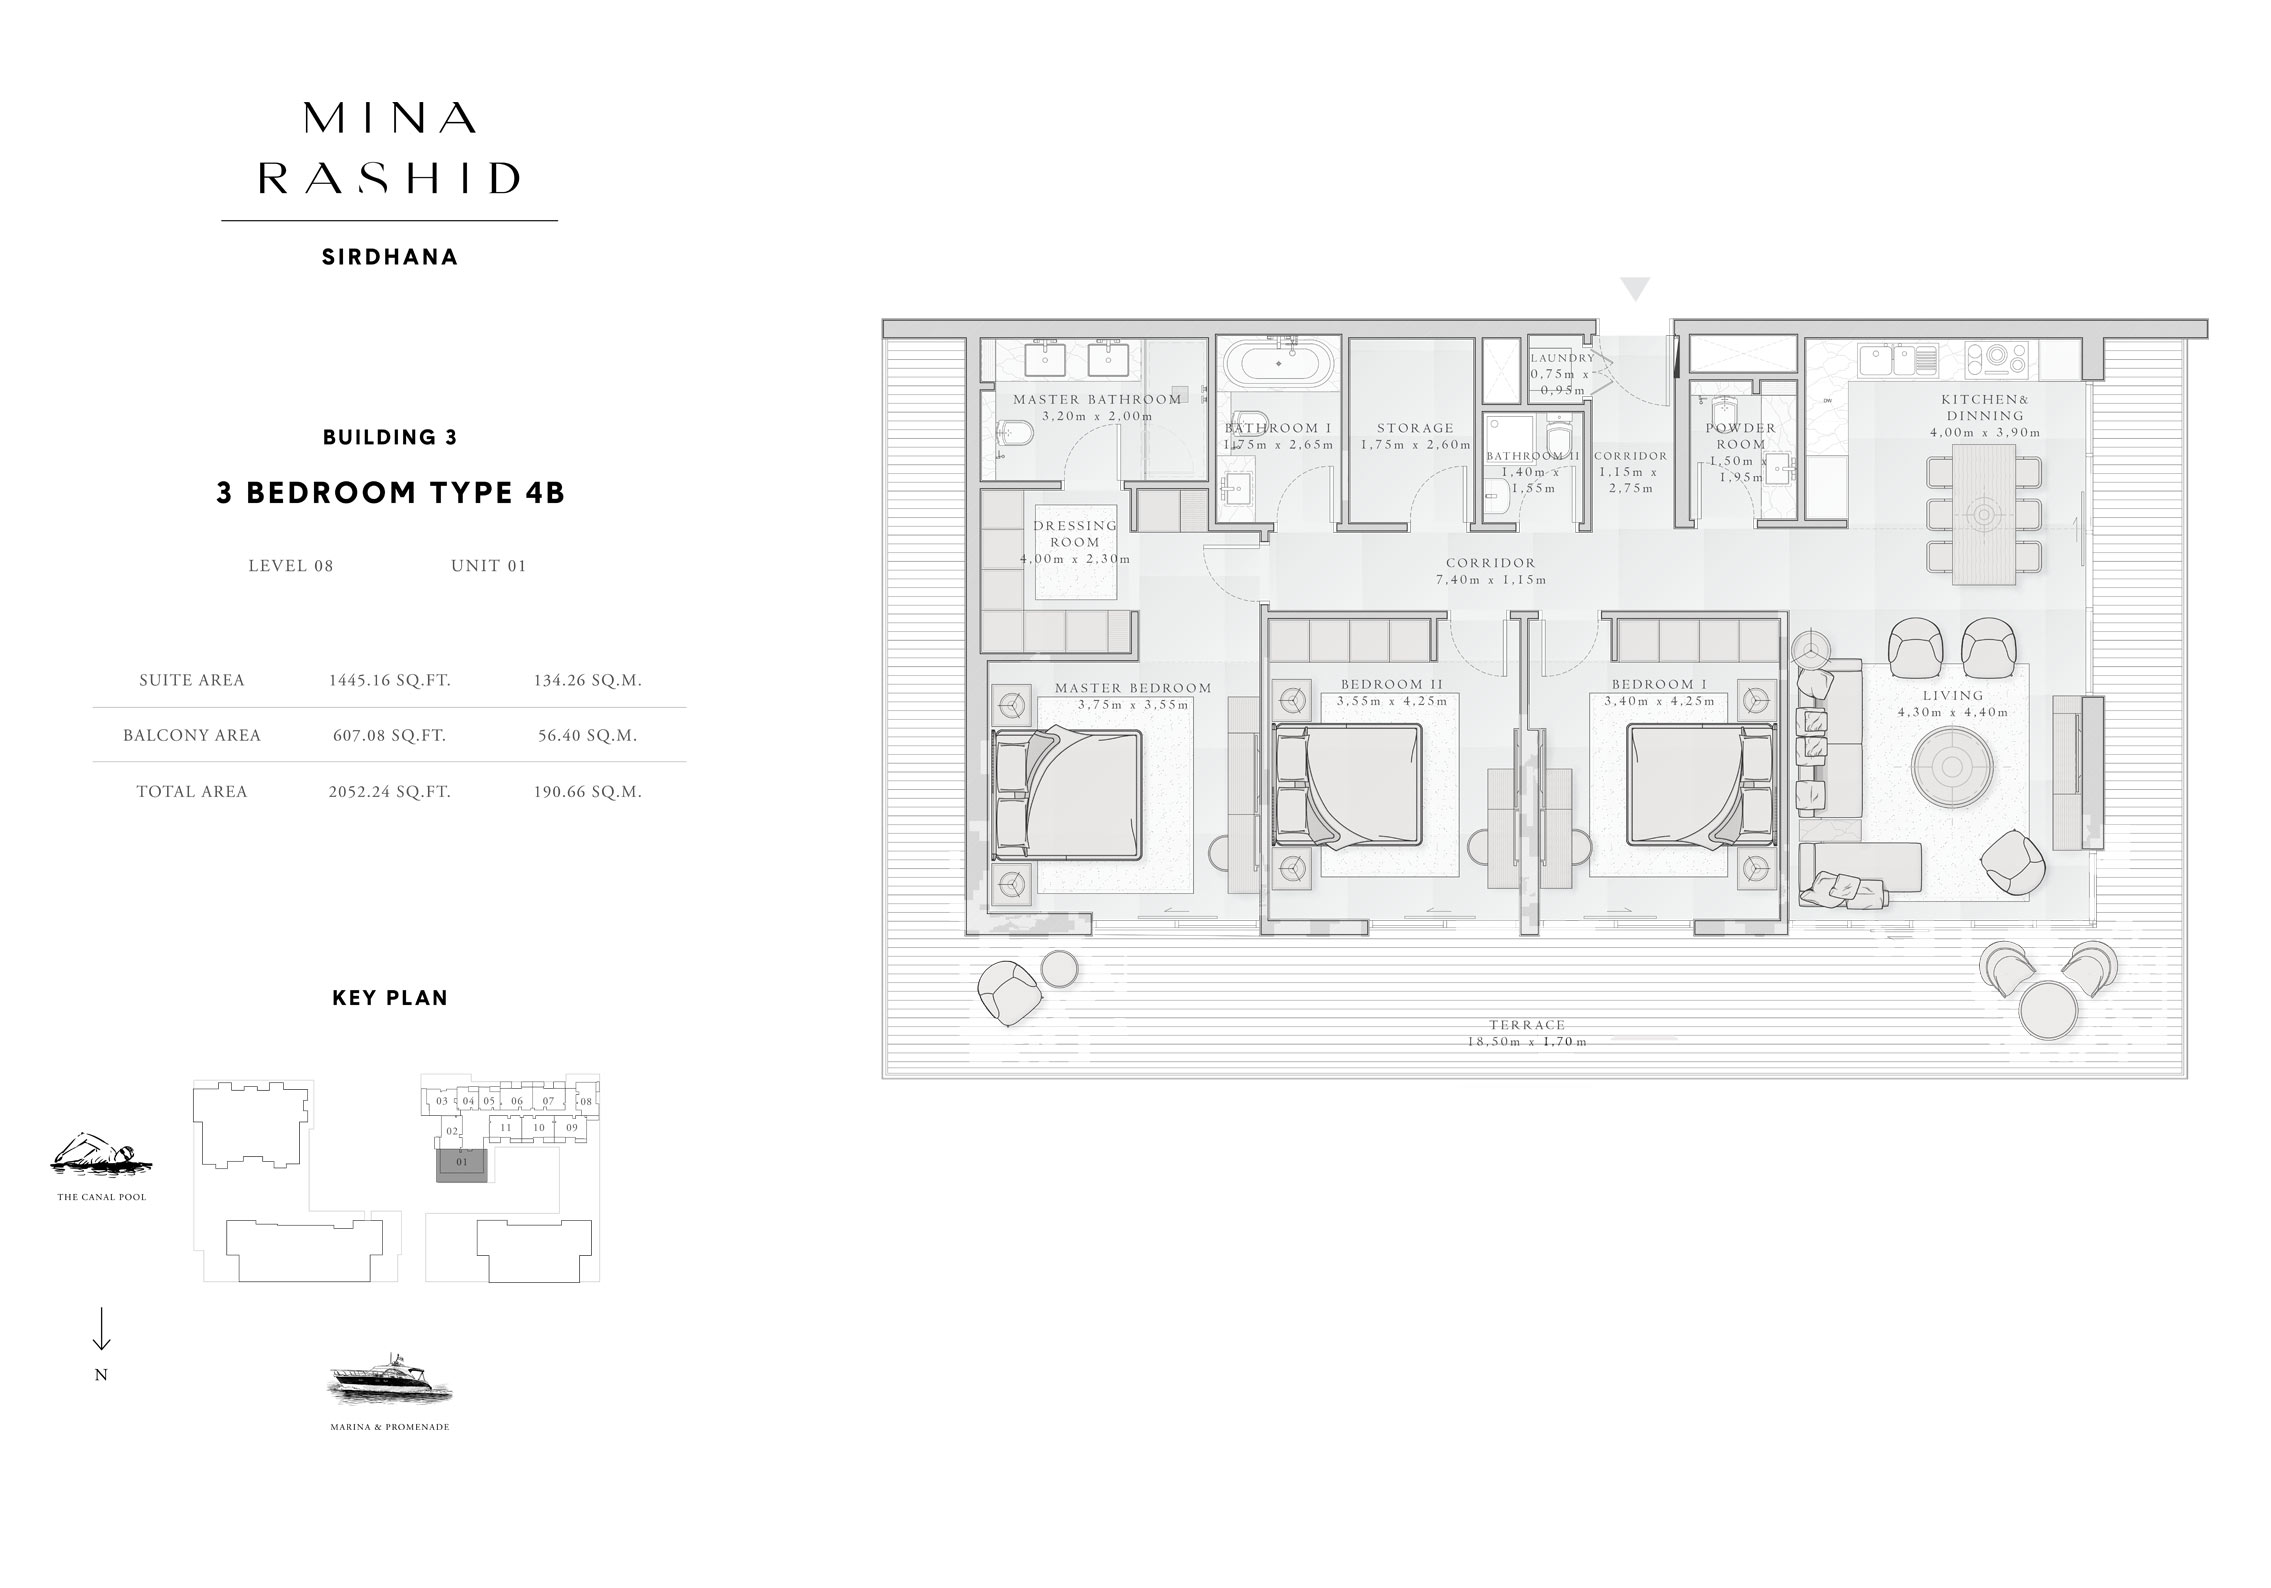 3-Bedroom-Type-4 B, Building-3, Level-8, Size-2052-Sq-Ft